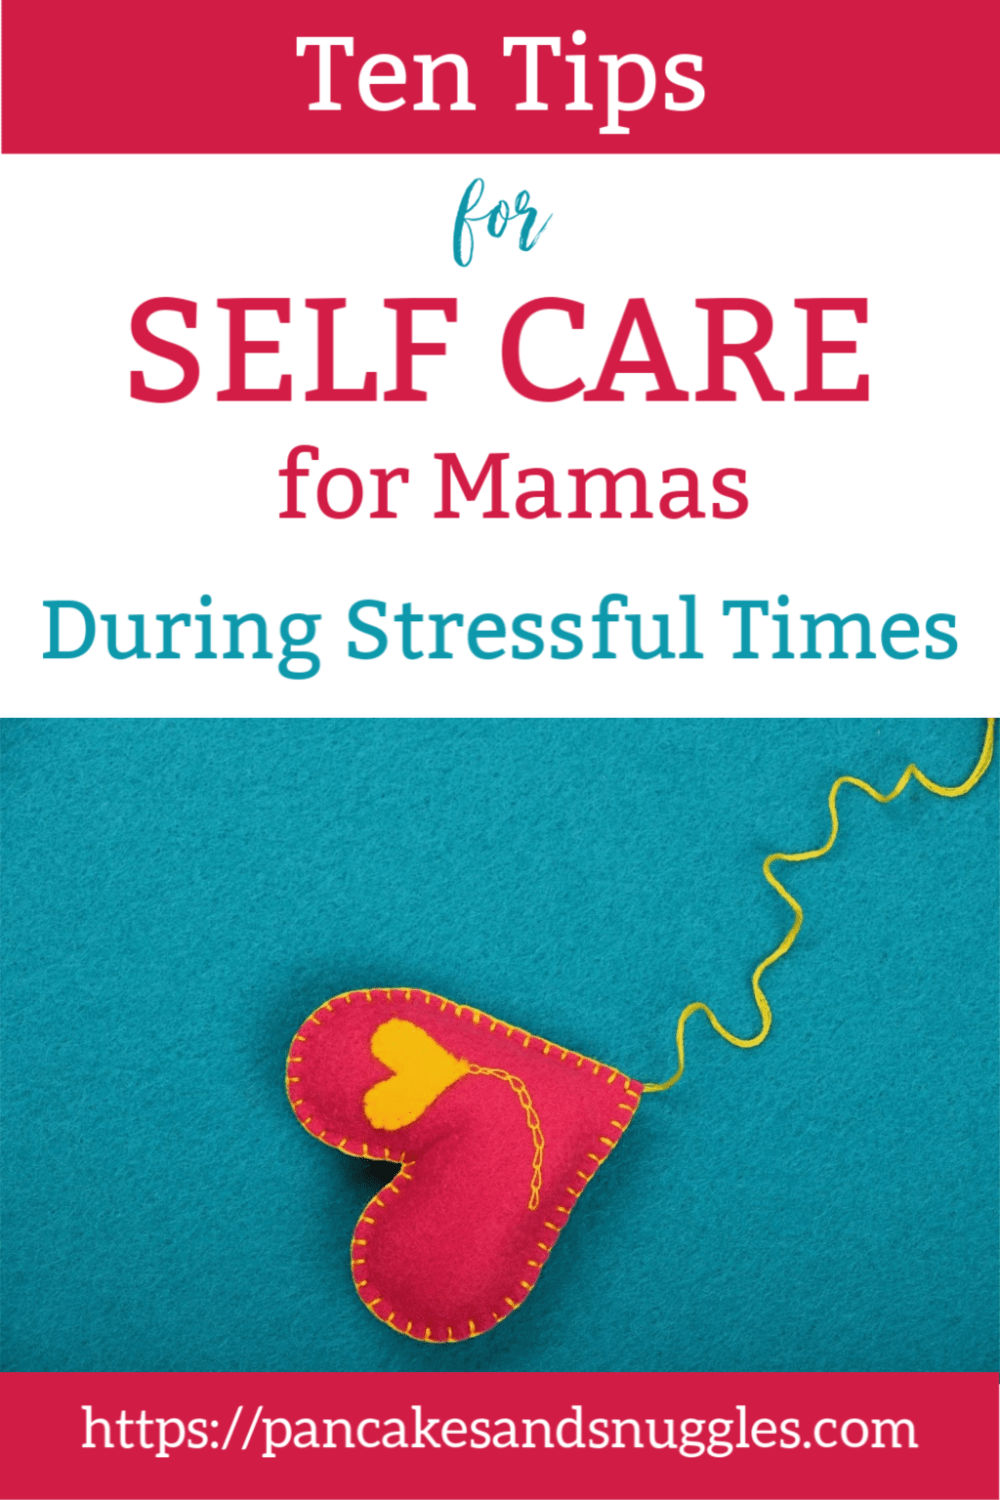 Take a breather, Mama! Step away from the craziness of life for a moment and check out my ten tips for self care.